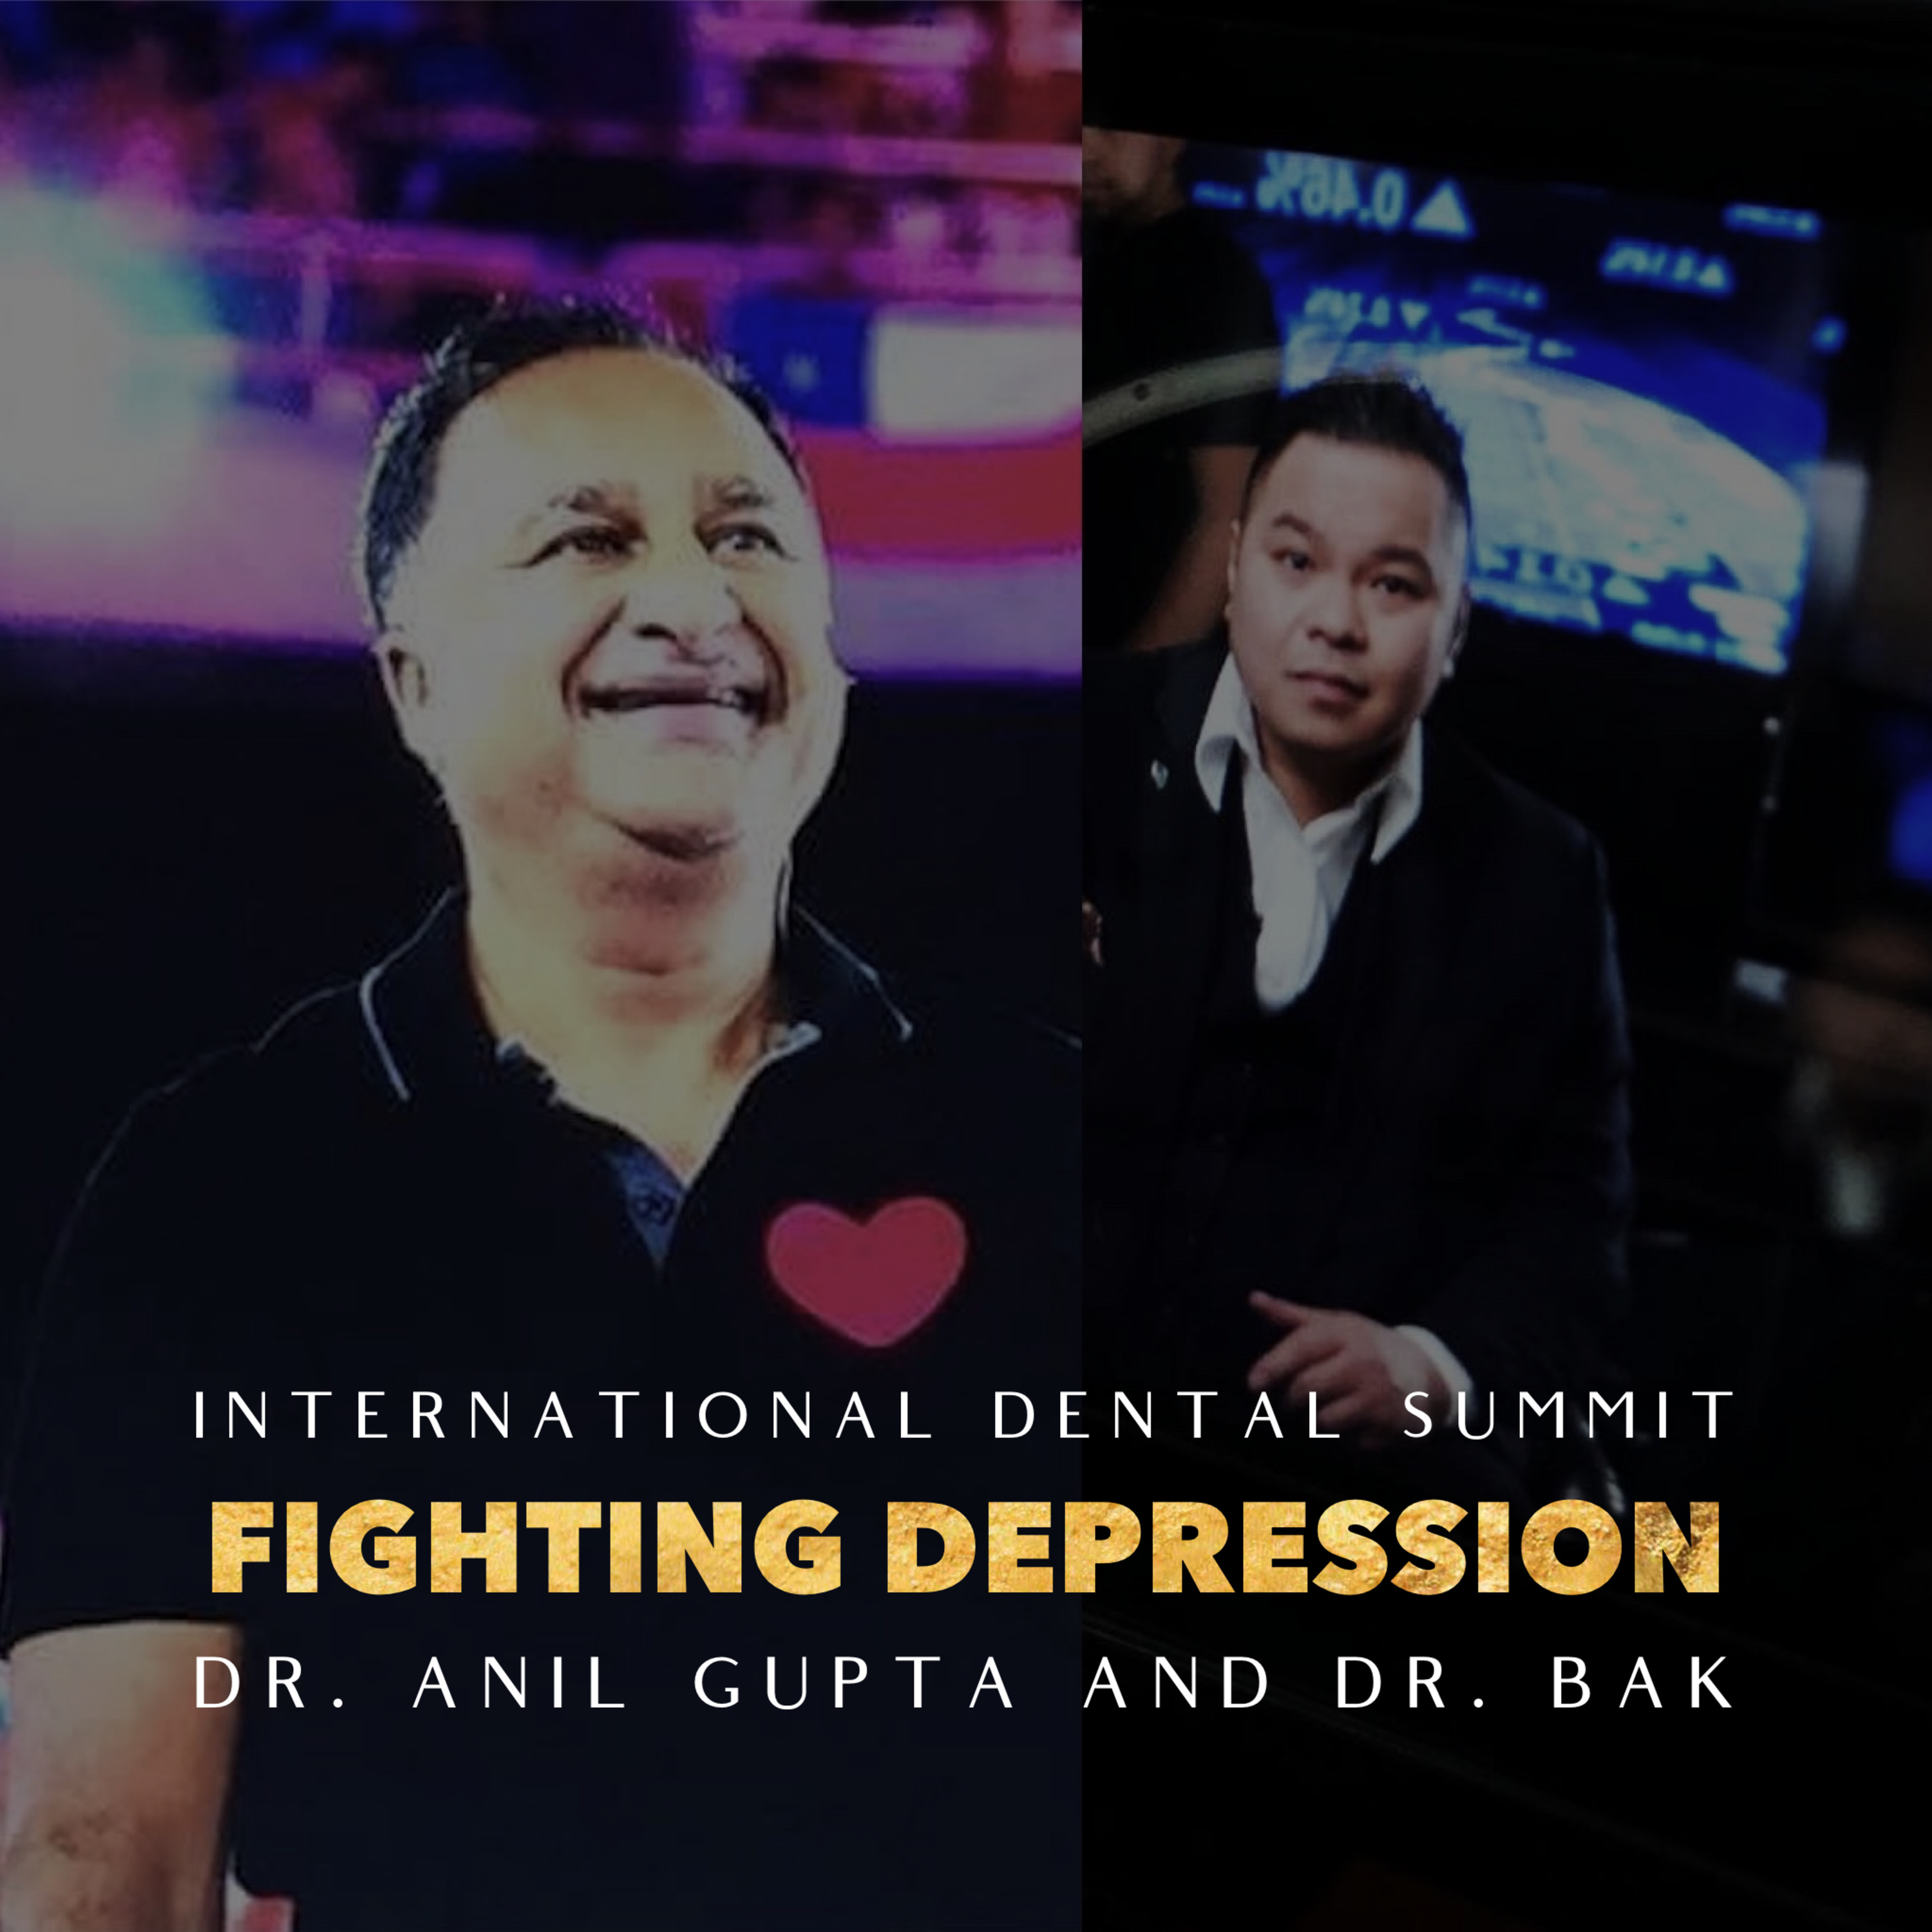 Fighting chronicle DEPRESSION with Dr. Anil Gupta